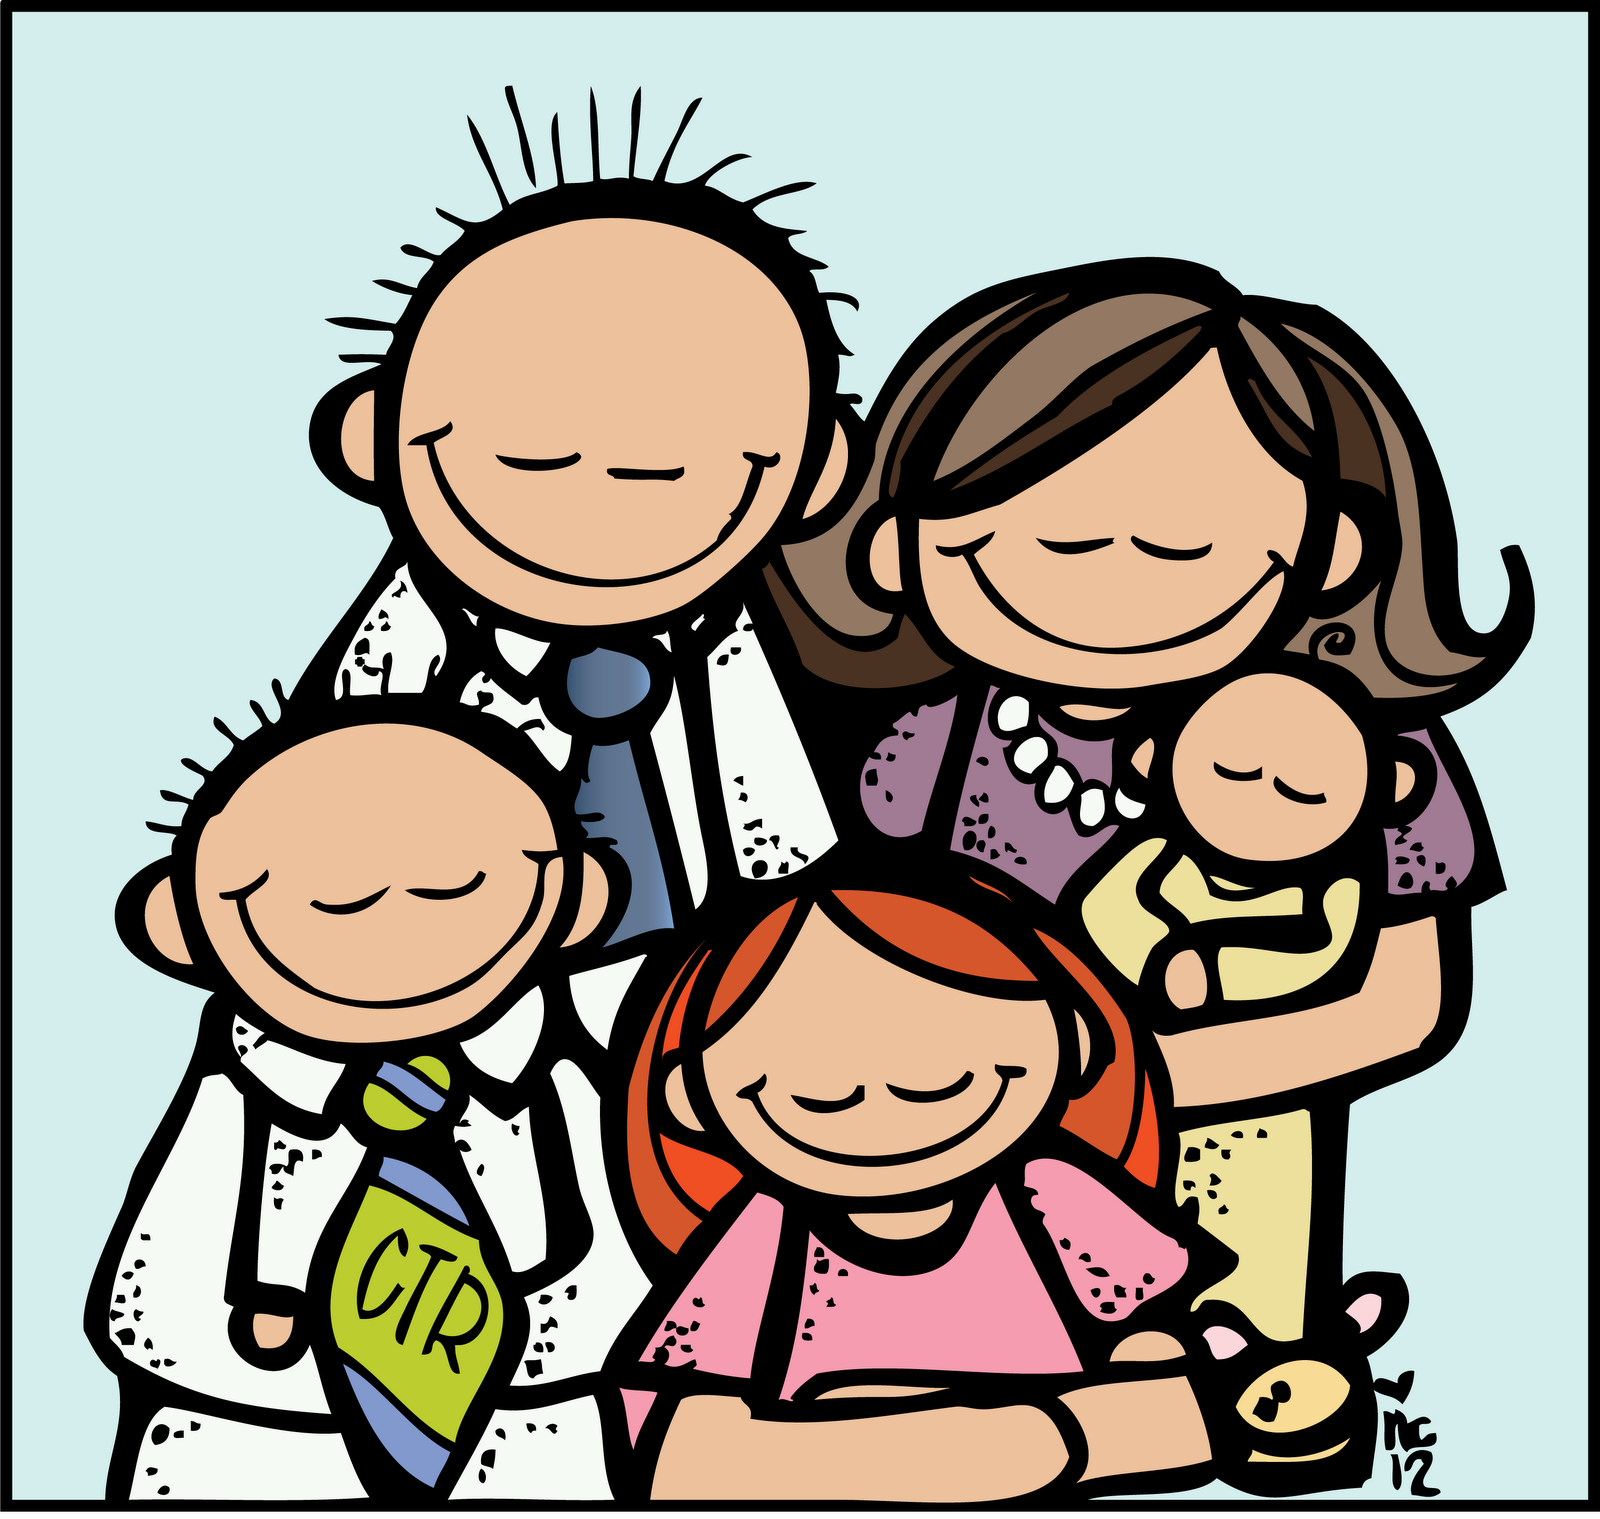 Family Cartoon Images - ClipArt Best